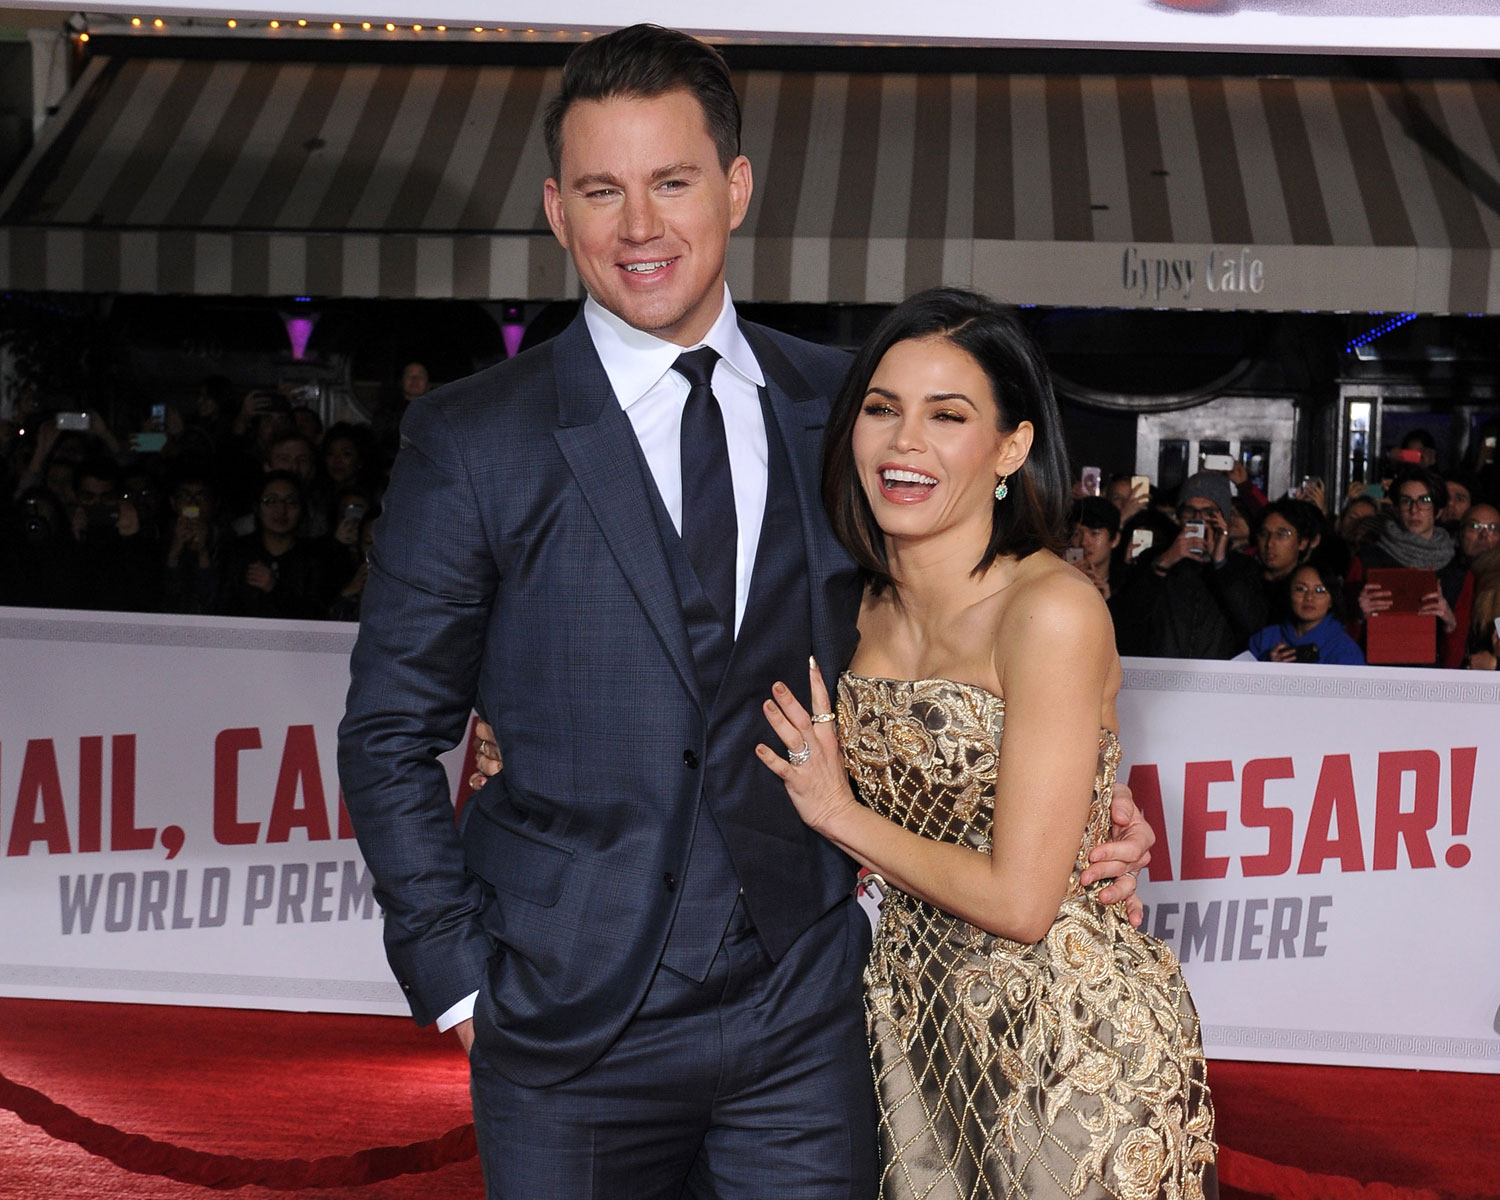 jenna dewan tatum dating Actress jenna says whether or not the rumored dance-off between justin timberlake and britney spears happened and also tells andy cohen if she dated justin w.